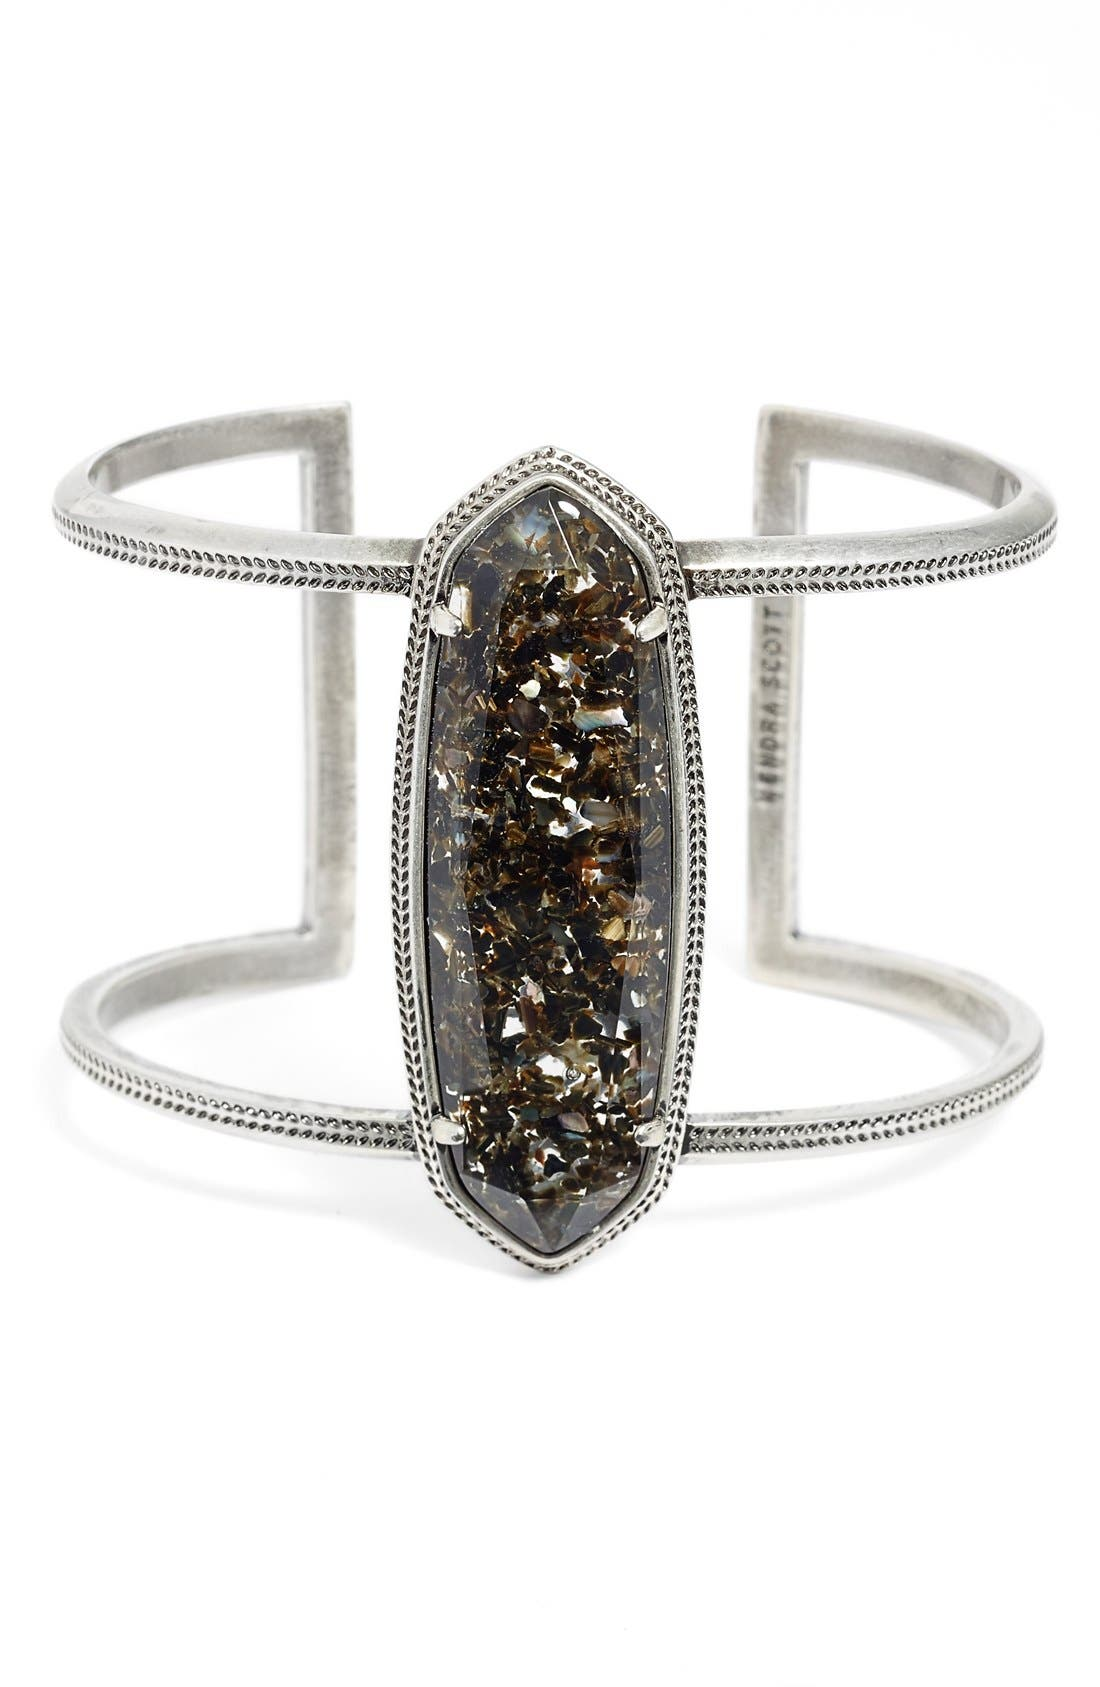 Alternate Image 1 Selected - Kendra Scott 'Lawson' Openwork Wrist Cuff